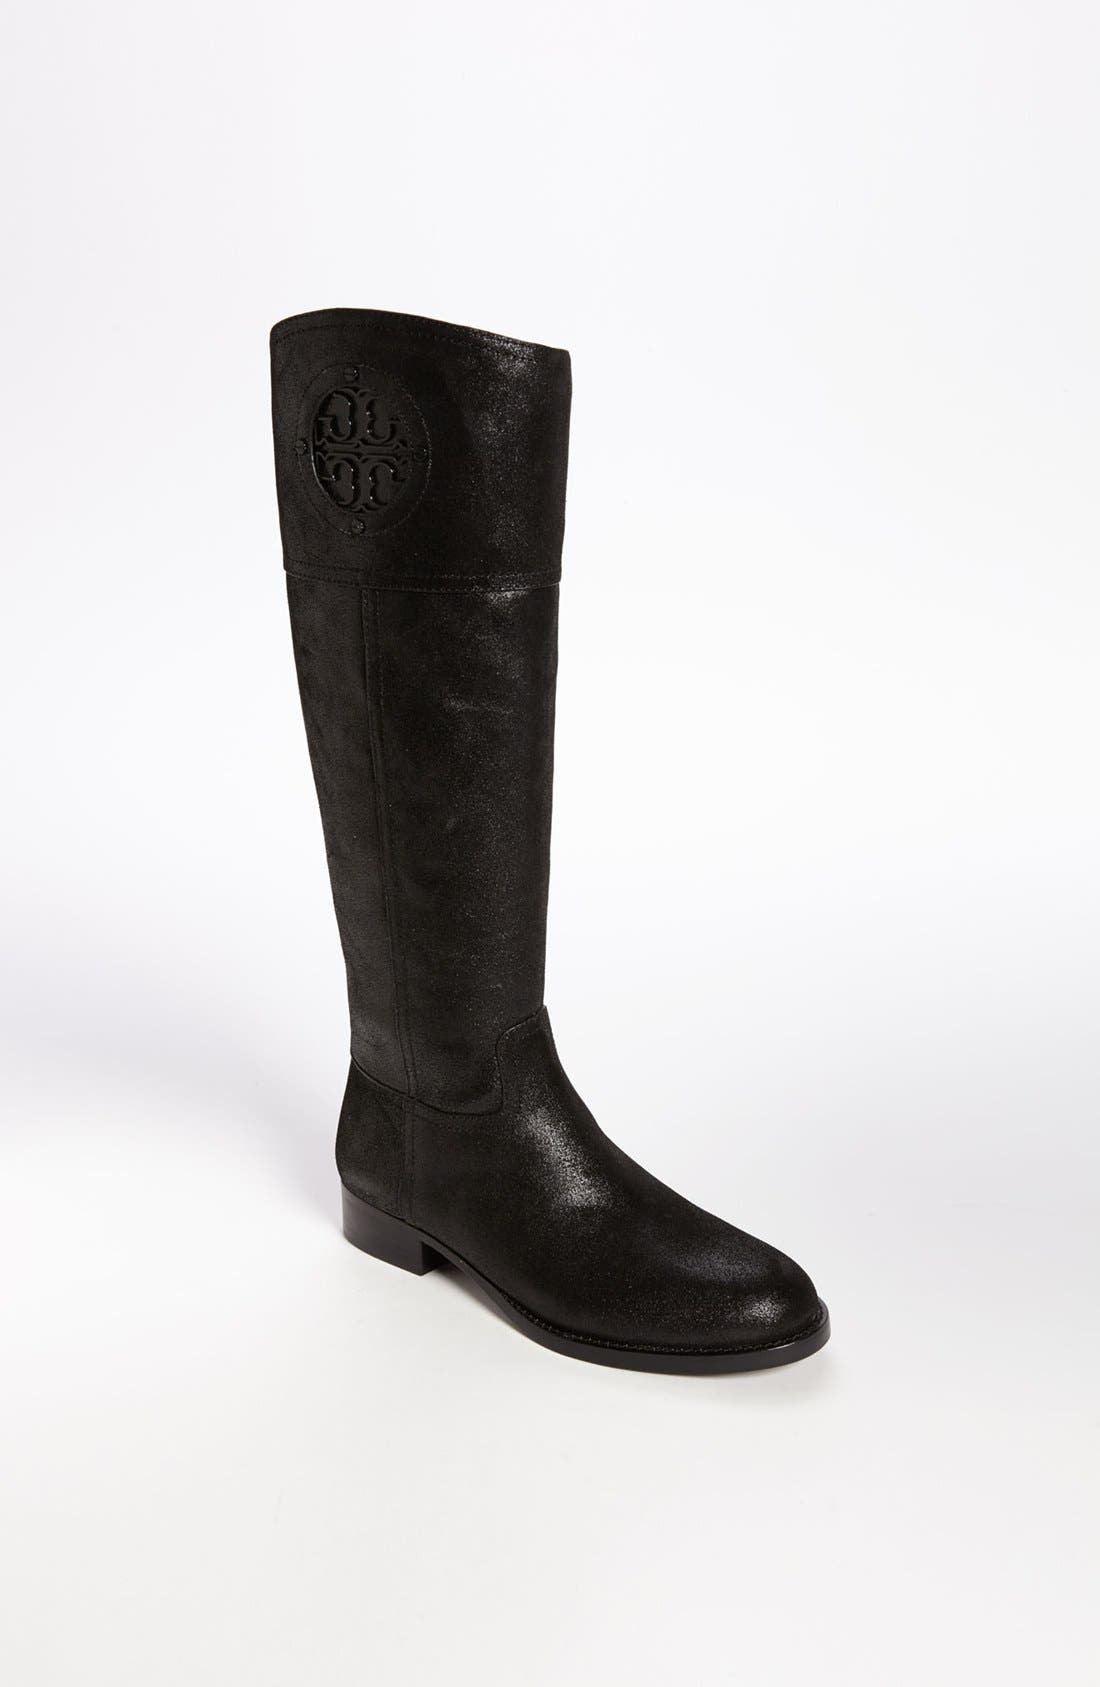 Main Image - Tory Burch 'Kiernan' Boot